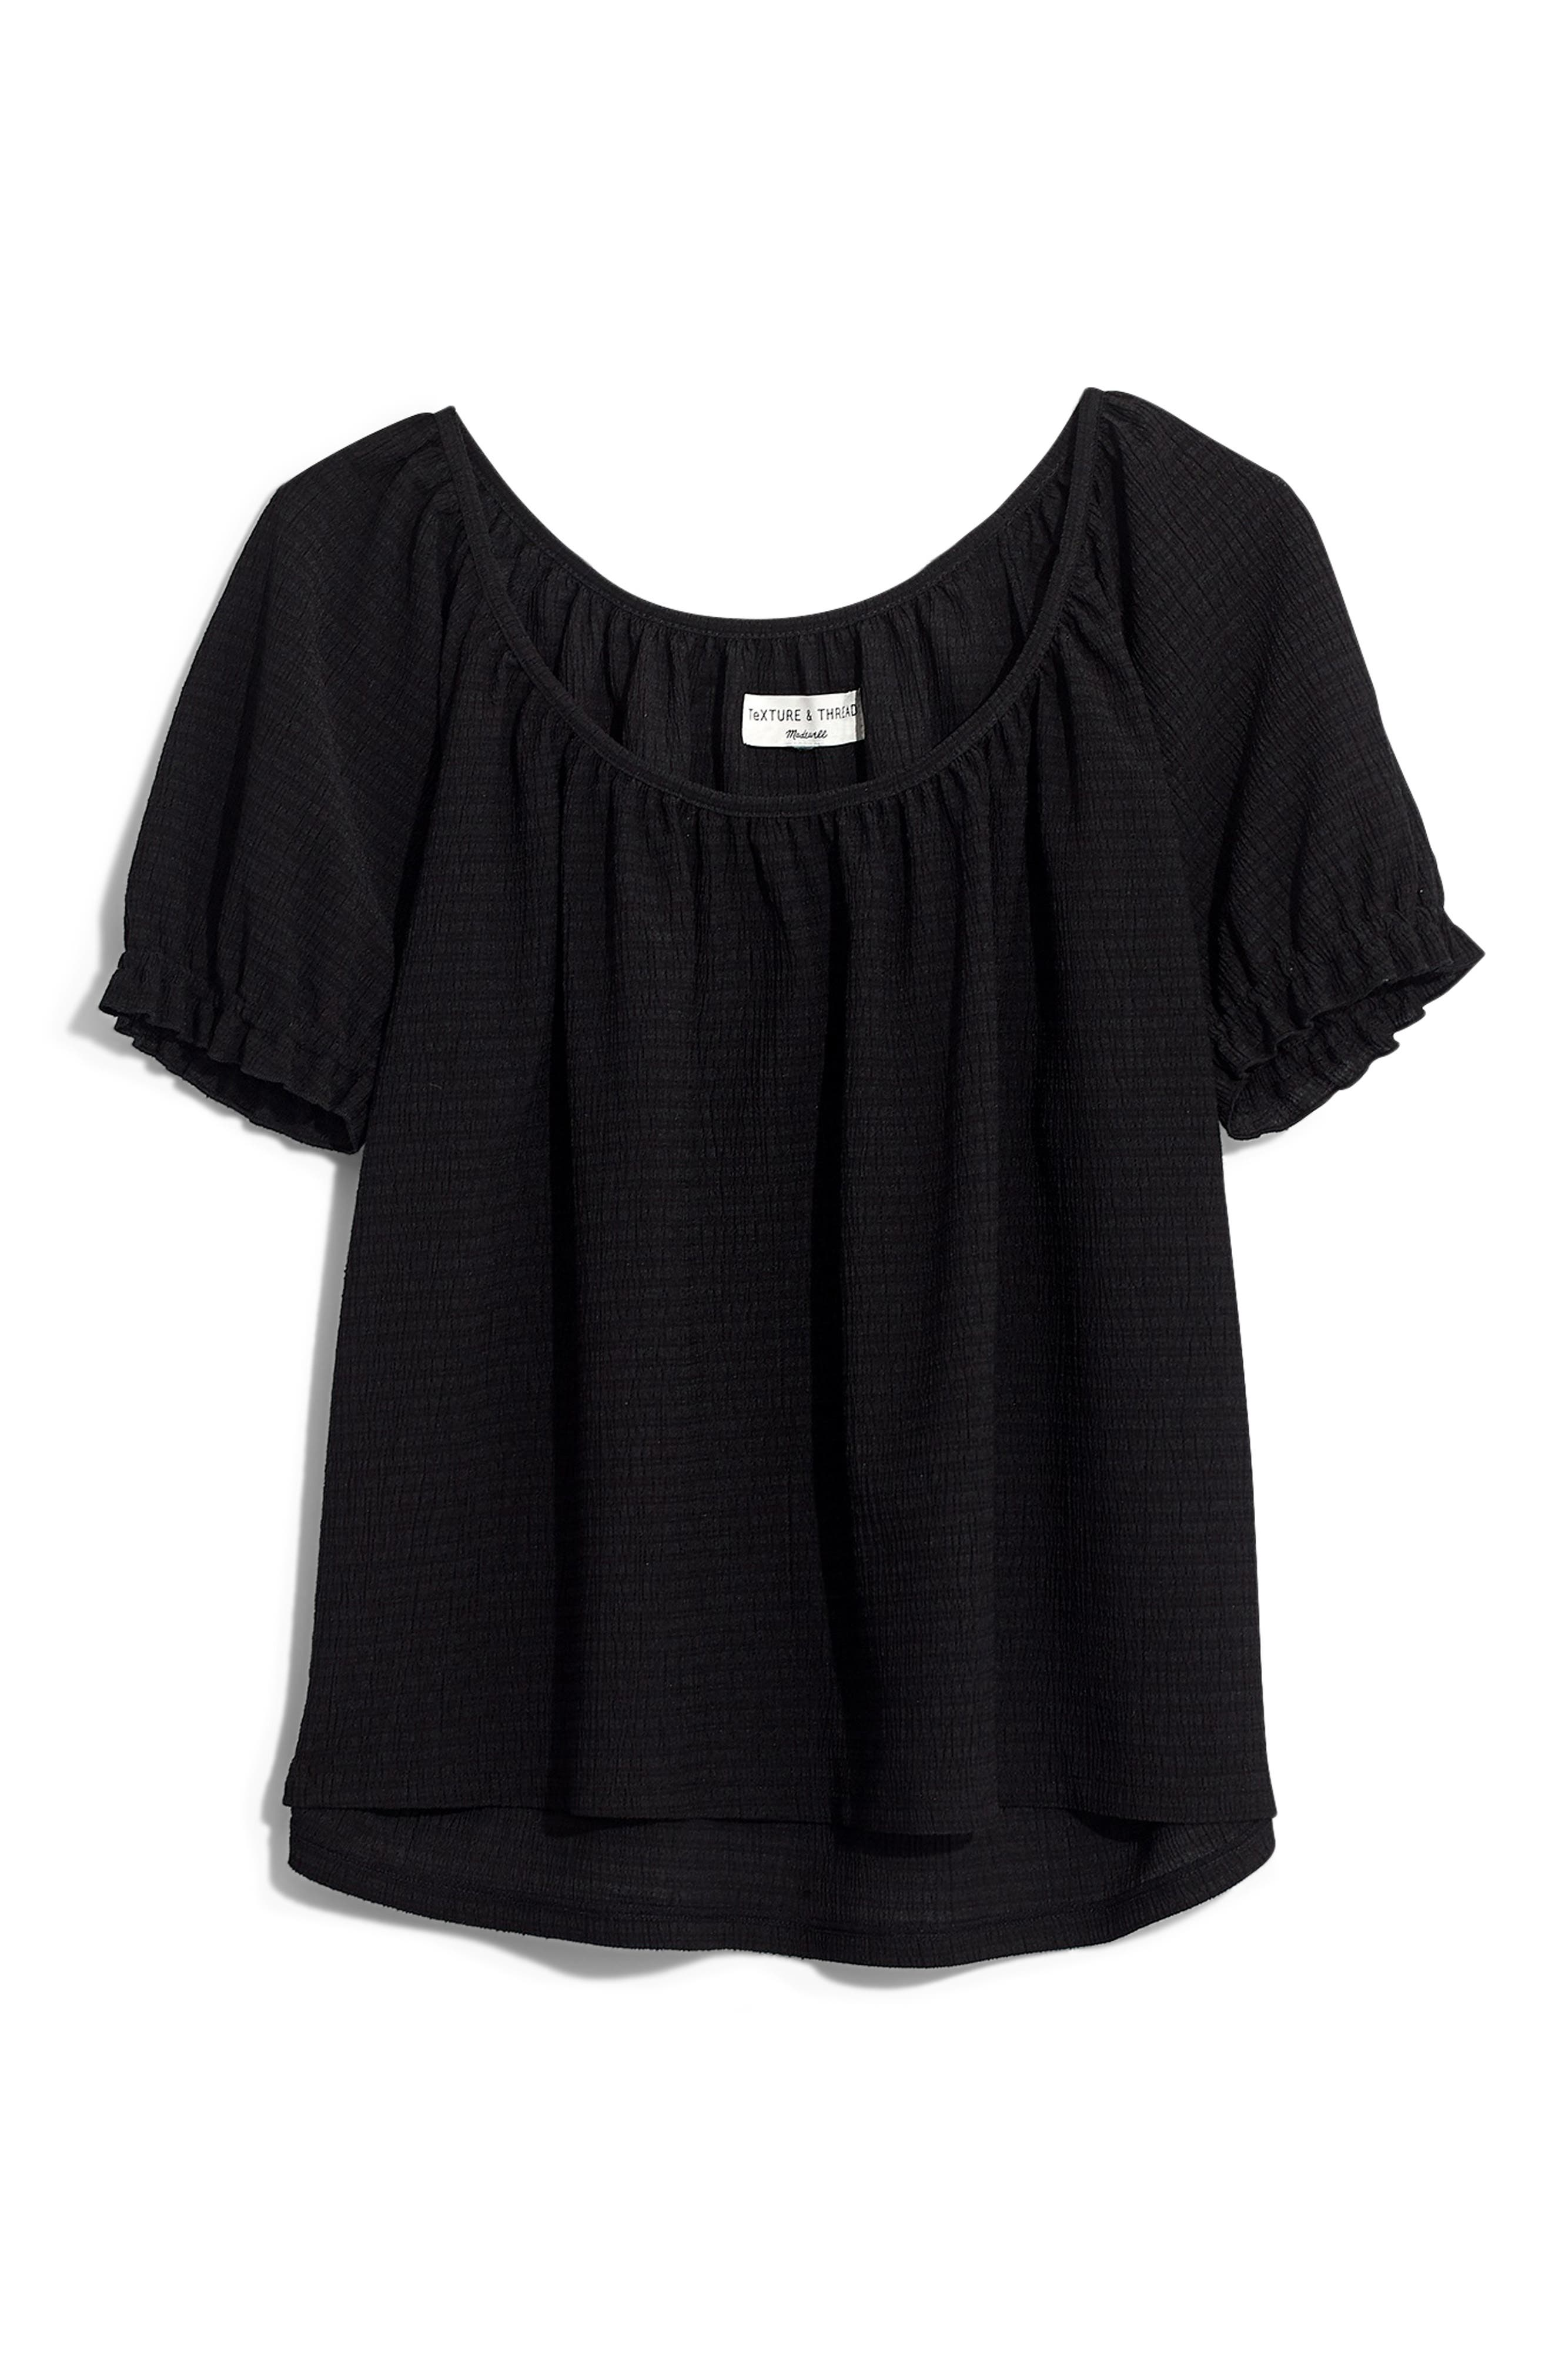 MADEWELL, Texture & Thread Peasant Top, Main thumbnail 1, color, TRUE BLACK